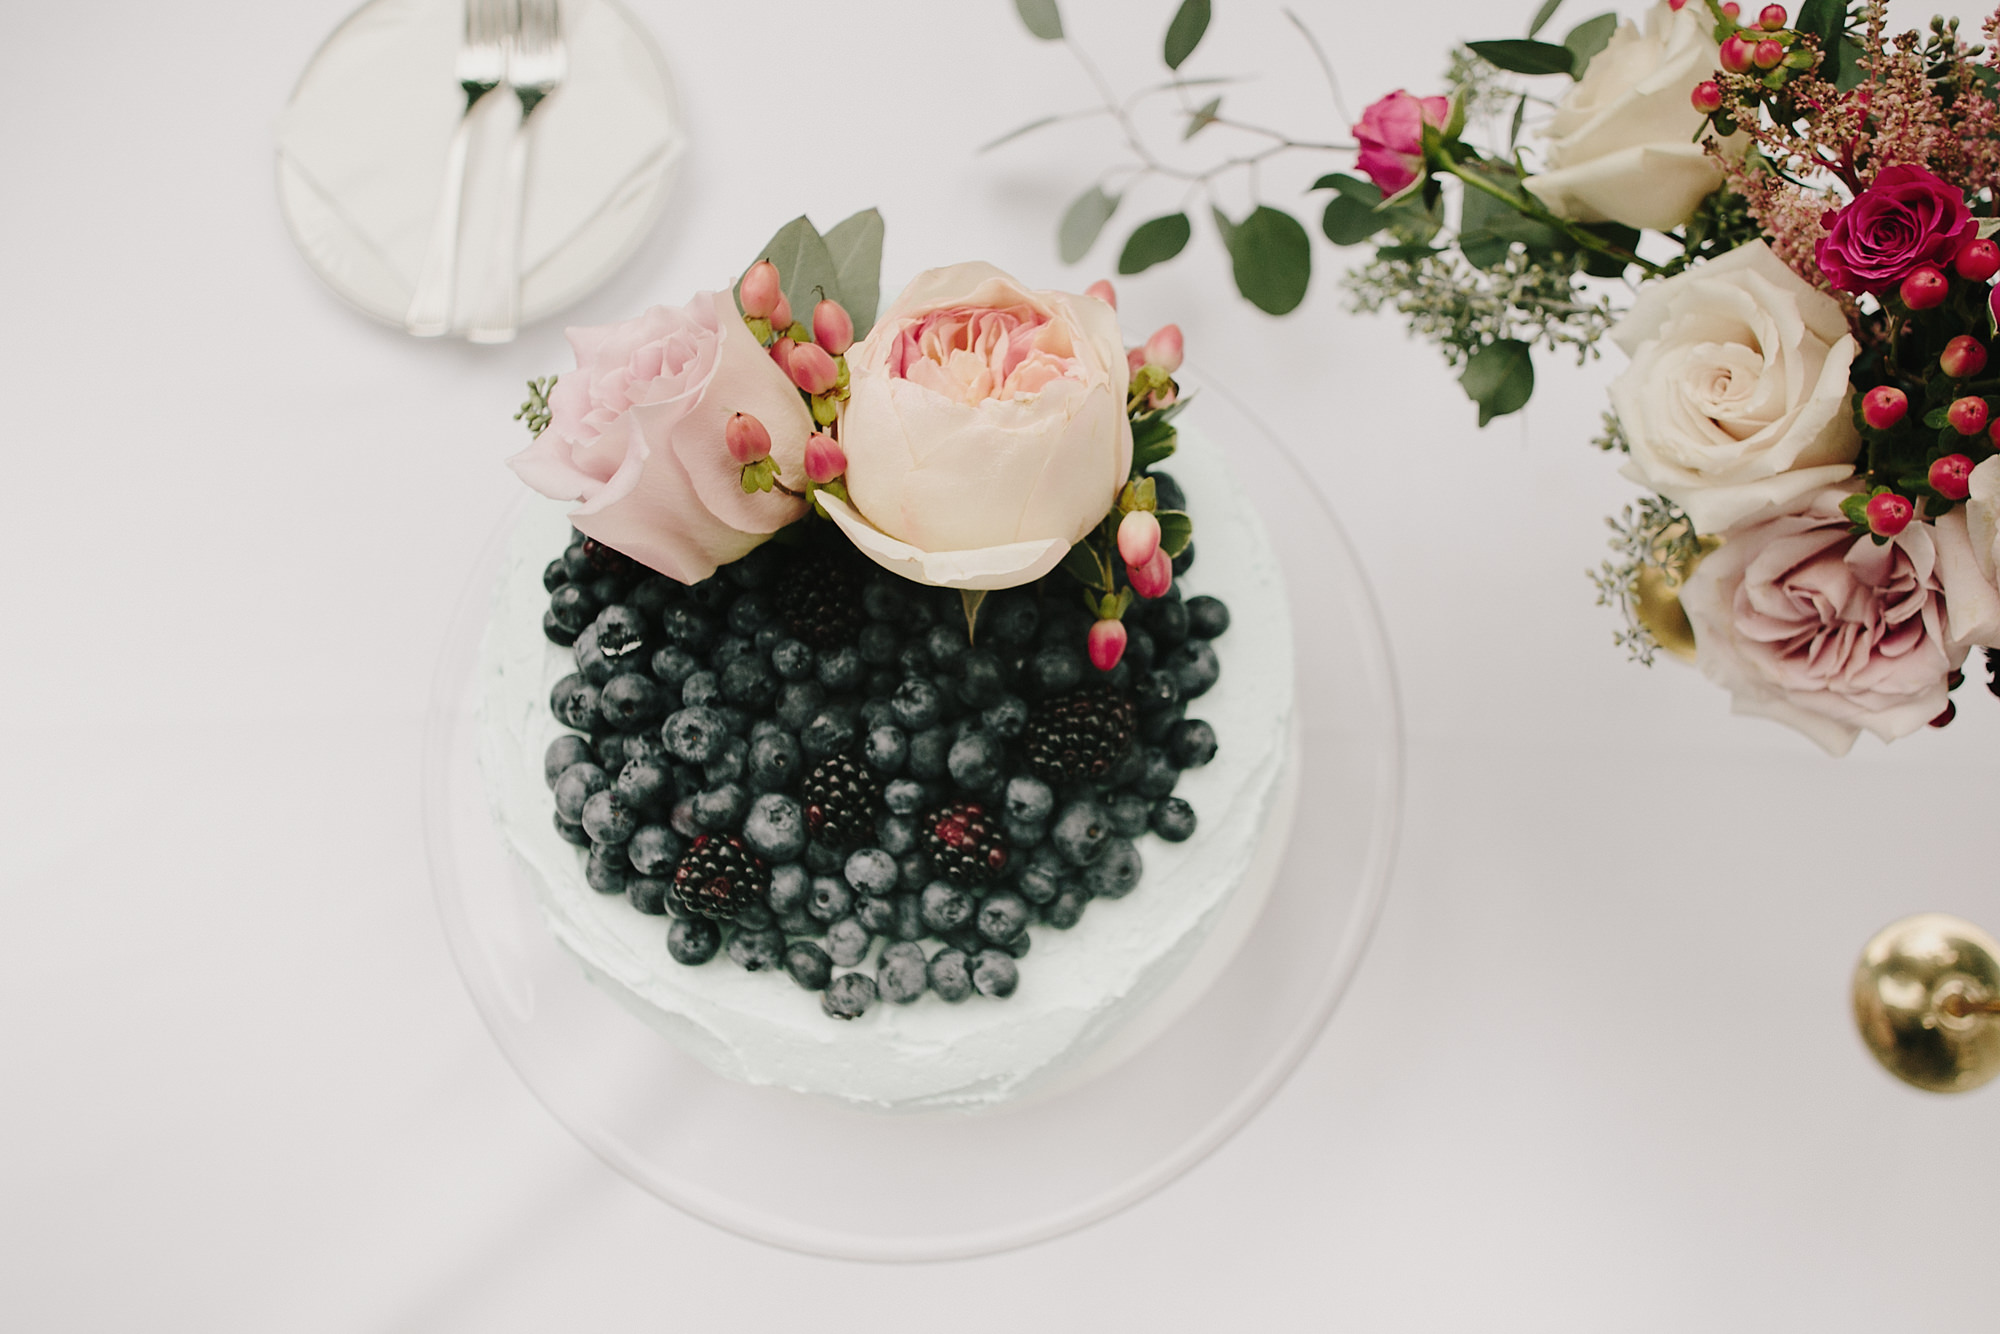 Blueberry bowls with pink roses - photo by James Moes